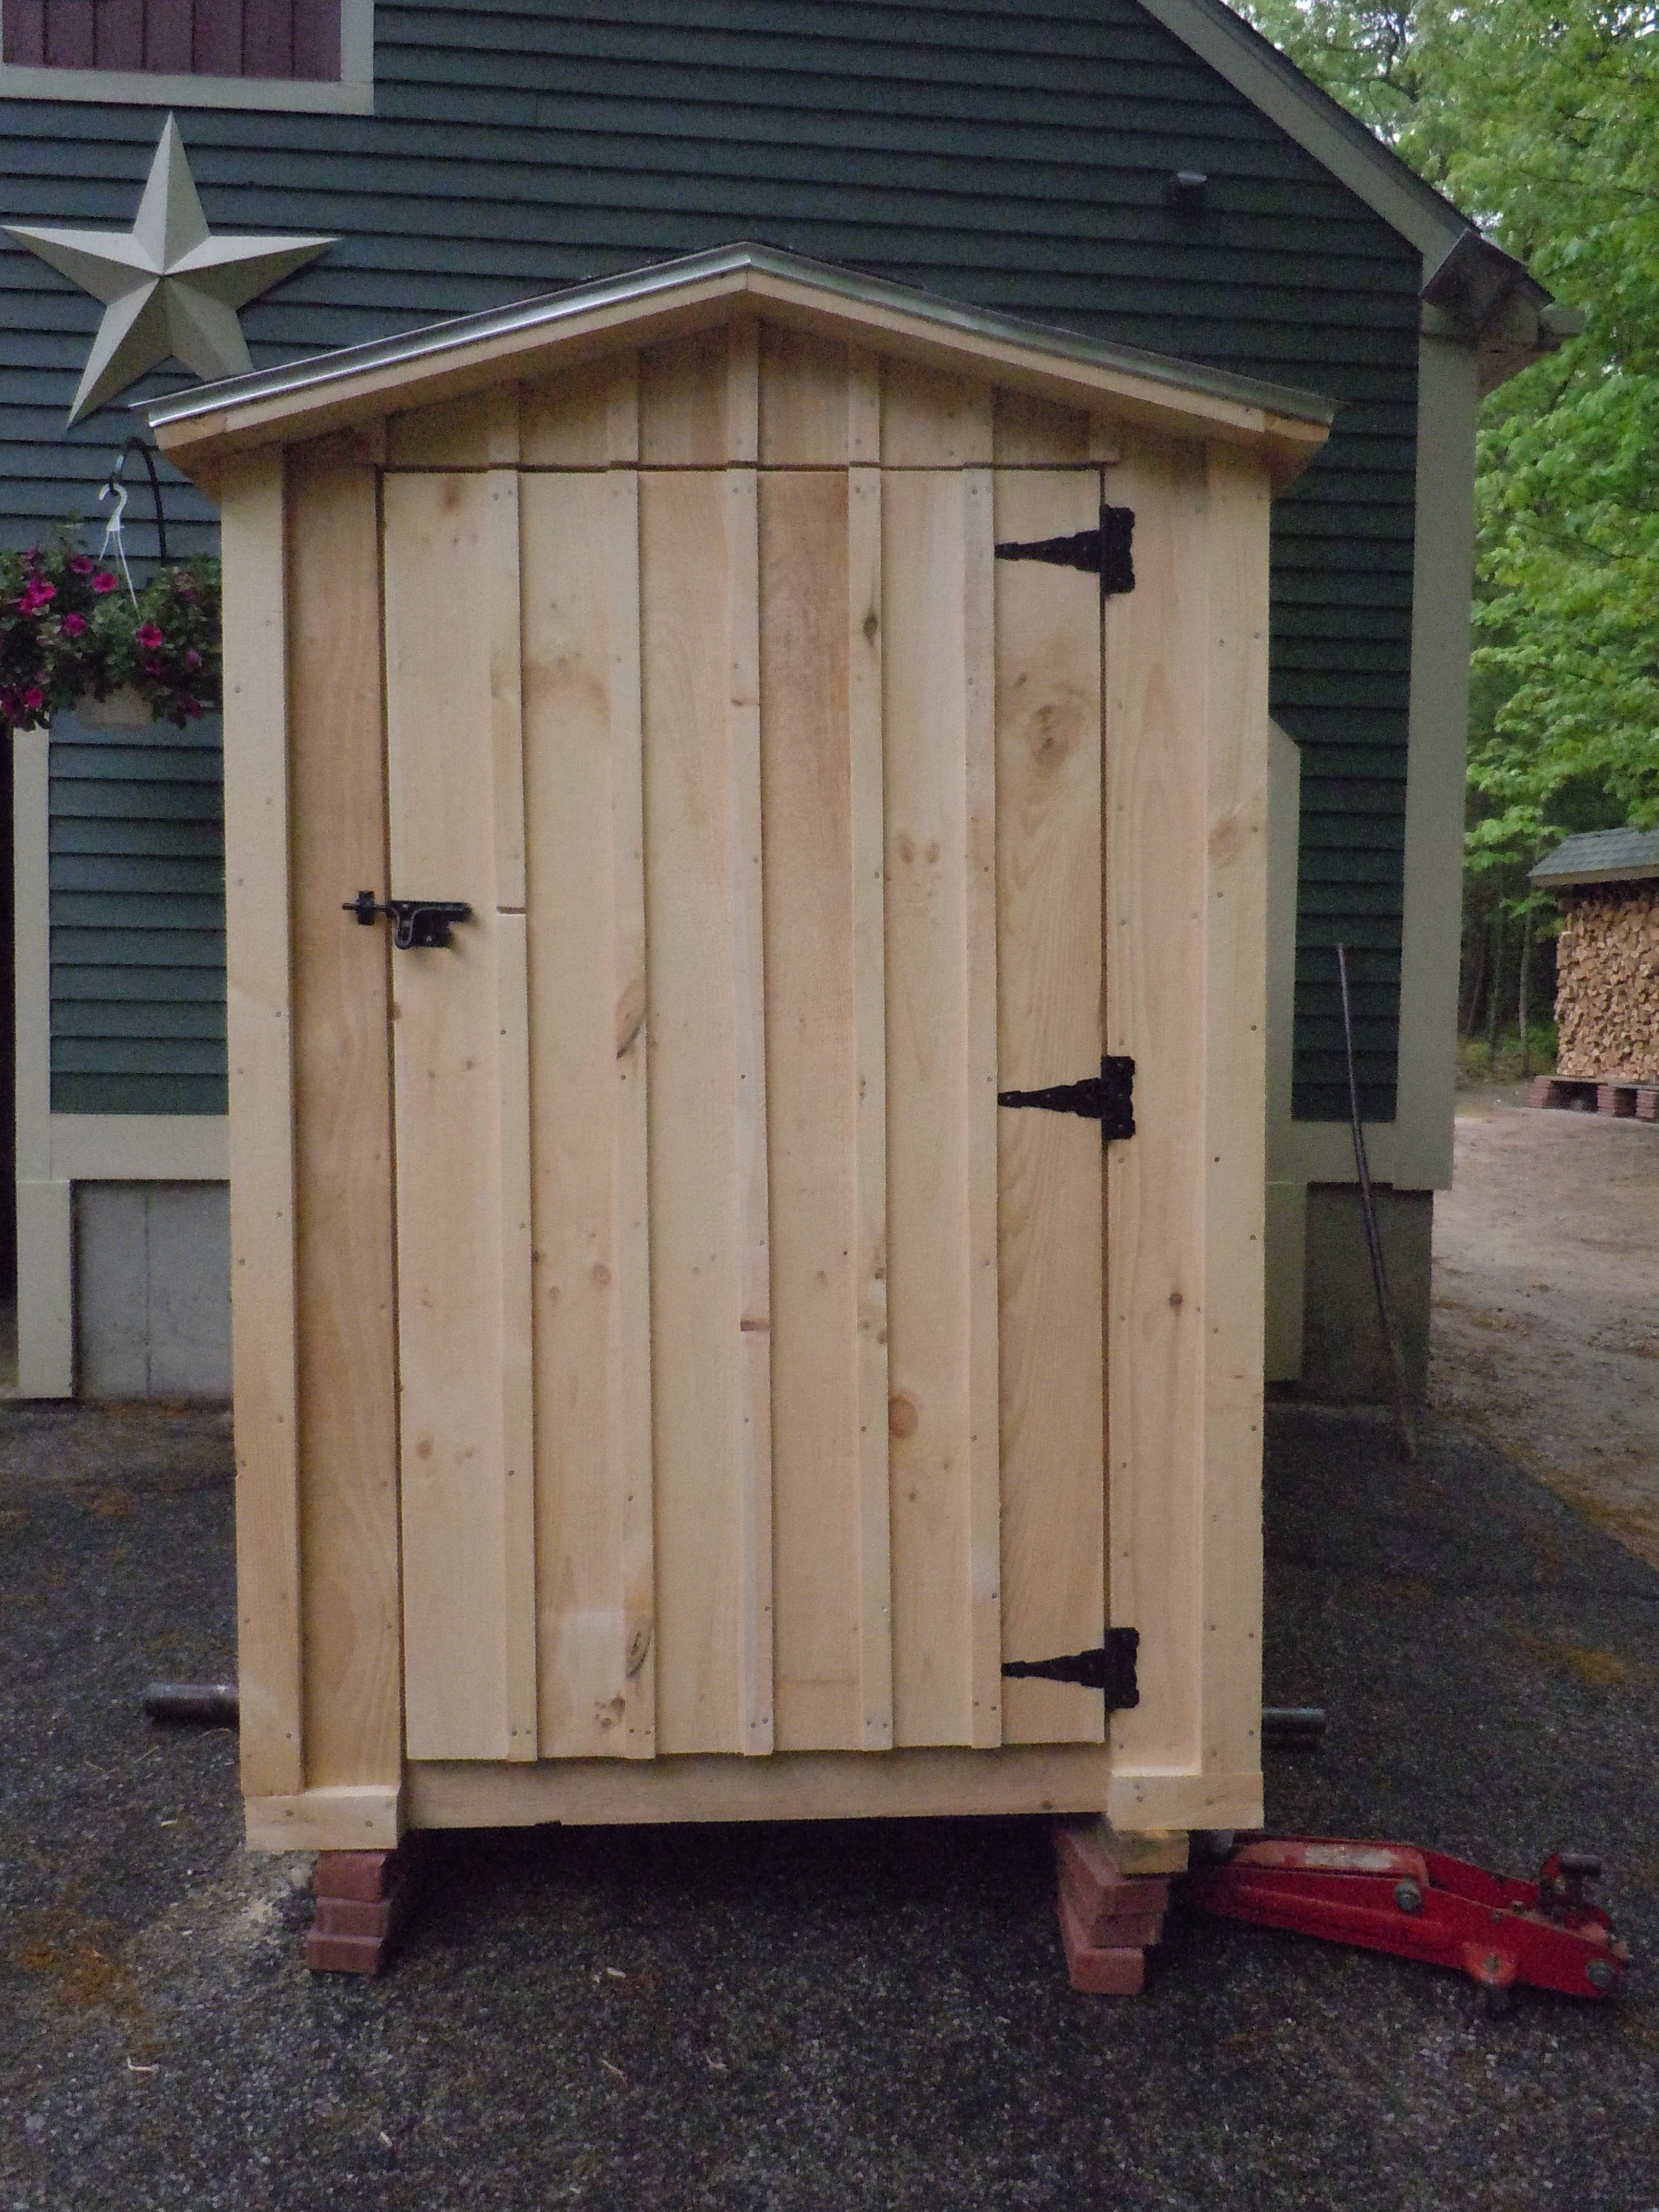 Specialty Sheds Amp Shelters Specialty Sheds Amp Shelters